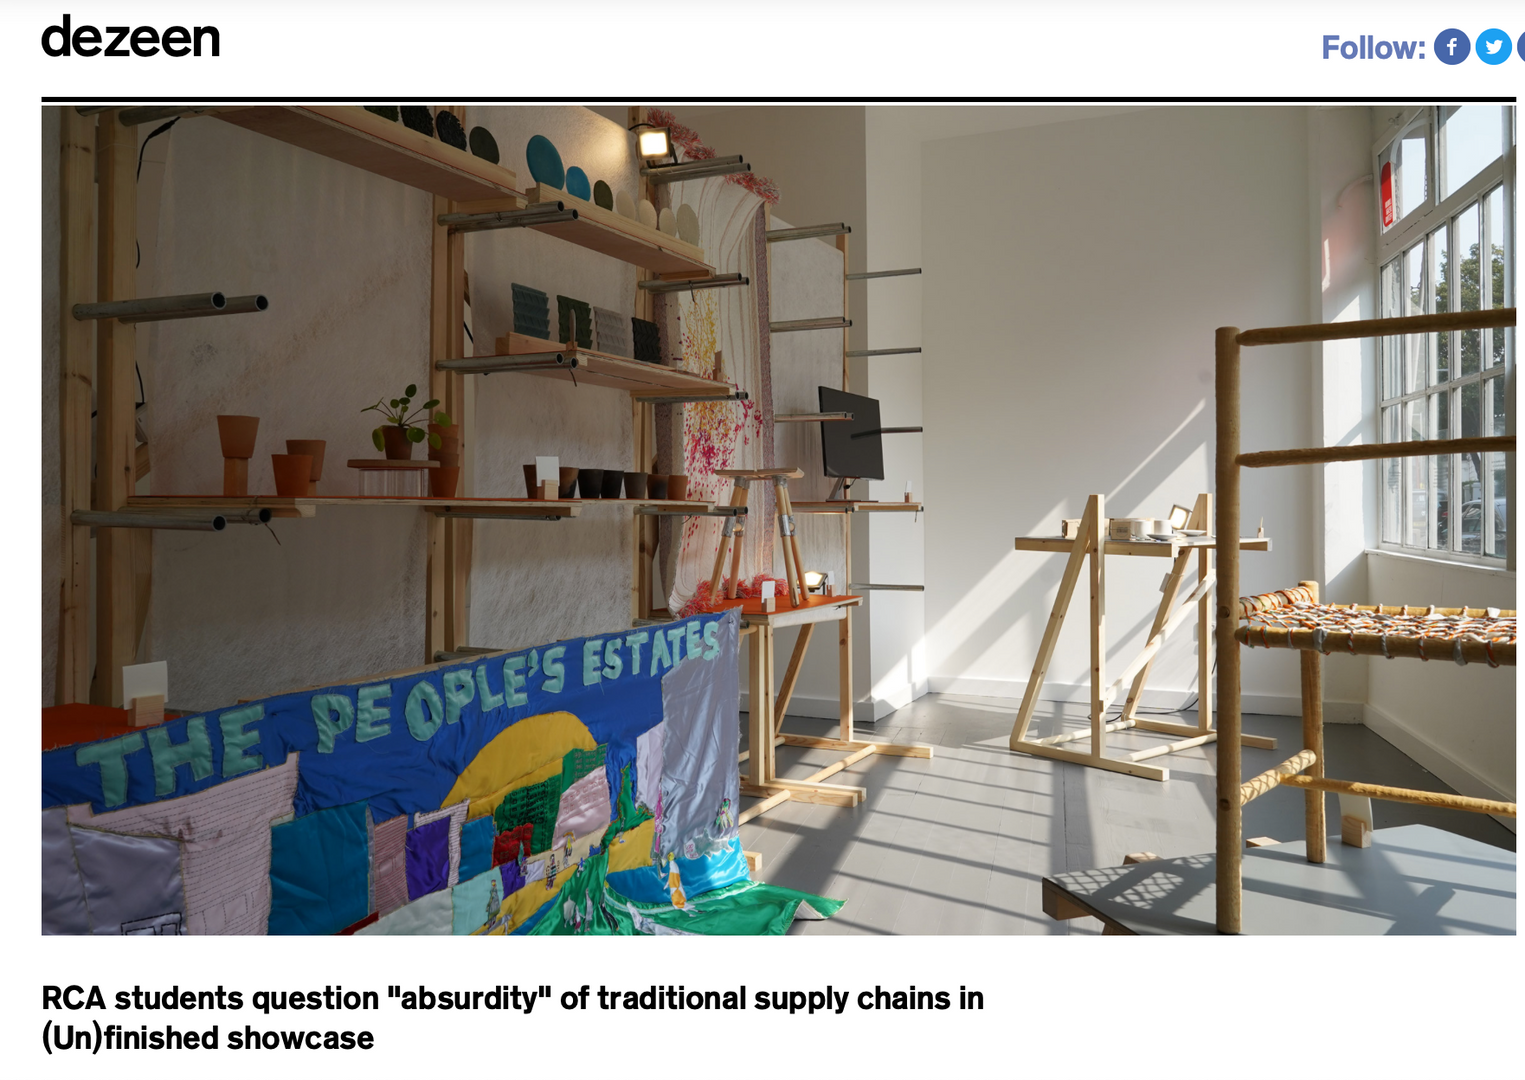 Dazeen - RCA students question 'absurdity' of traditional supply chian in (un)finished showcase